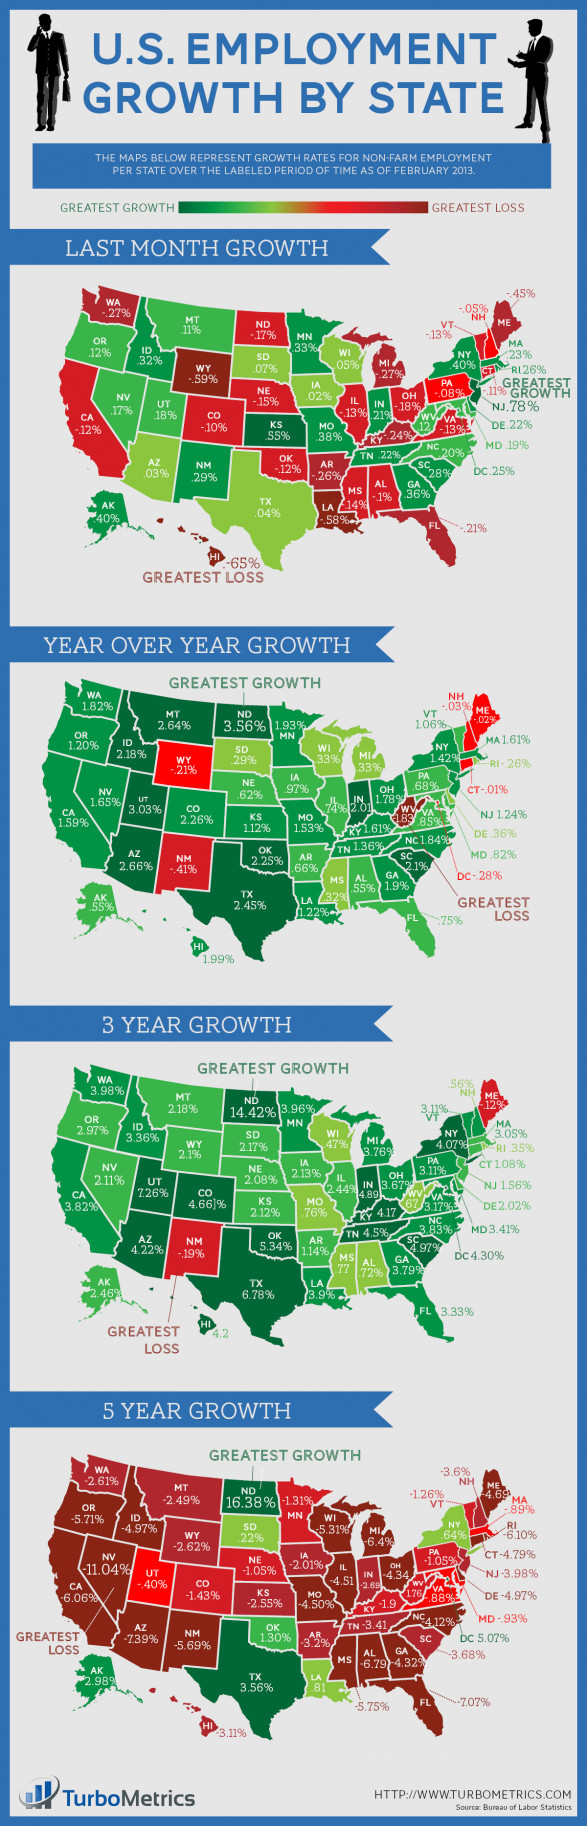 U.S. Employment Growth by State